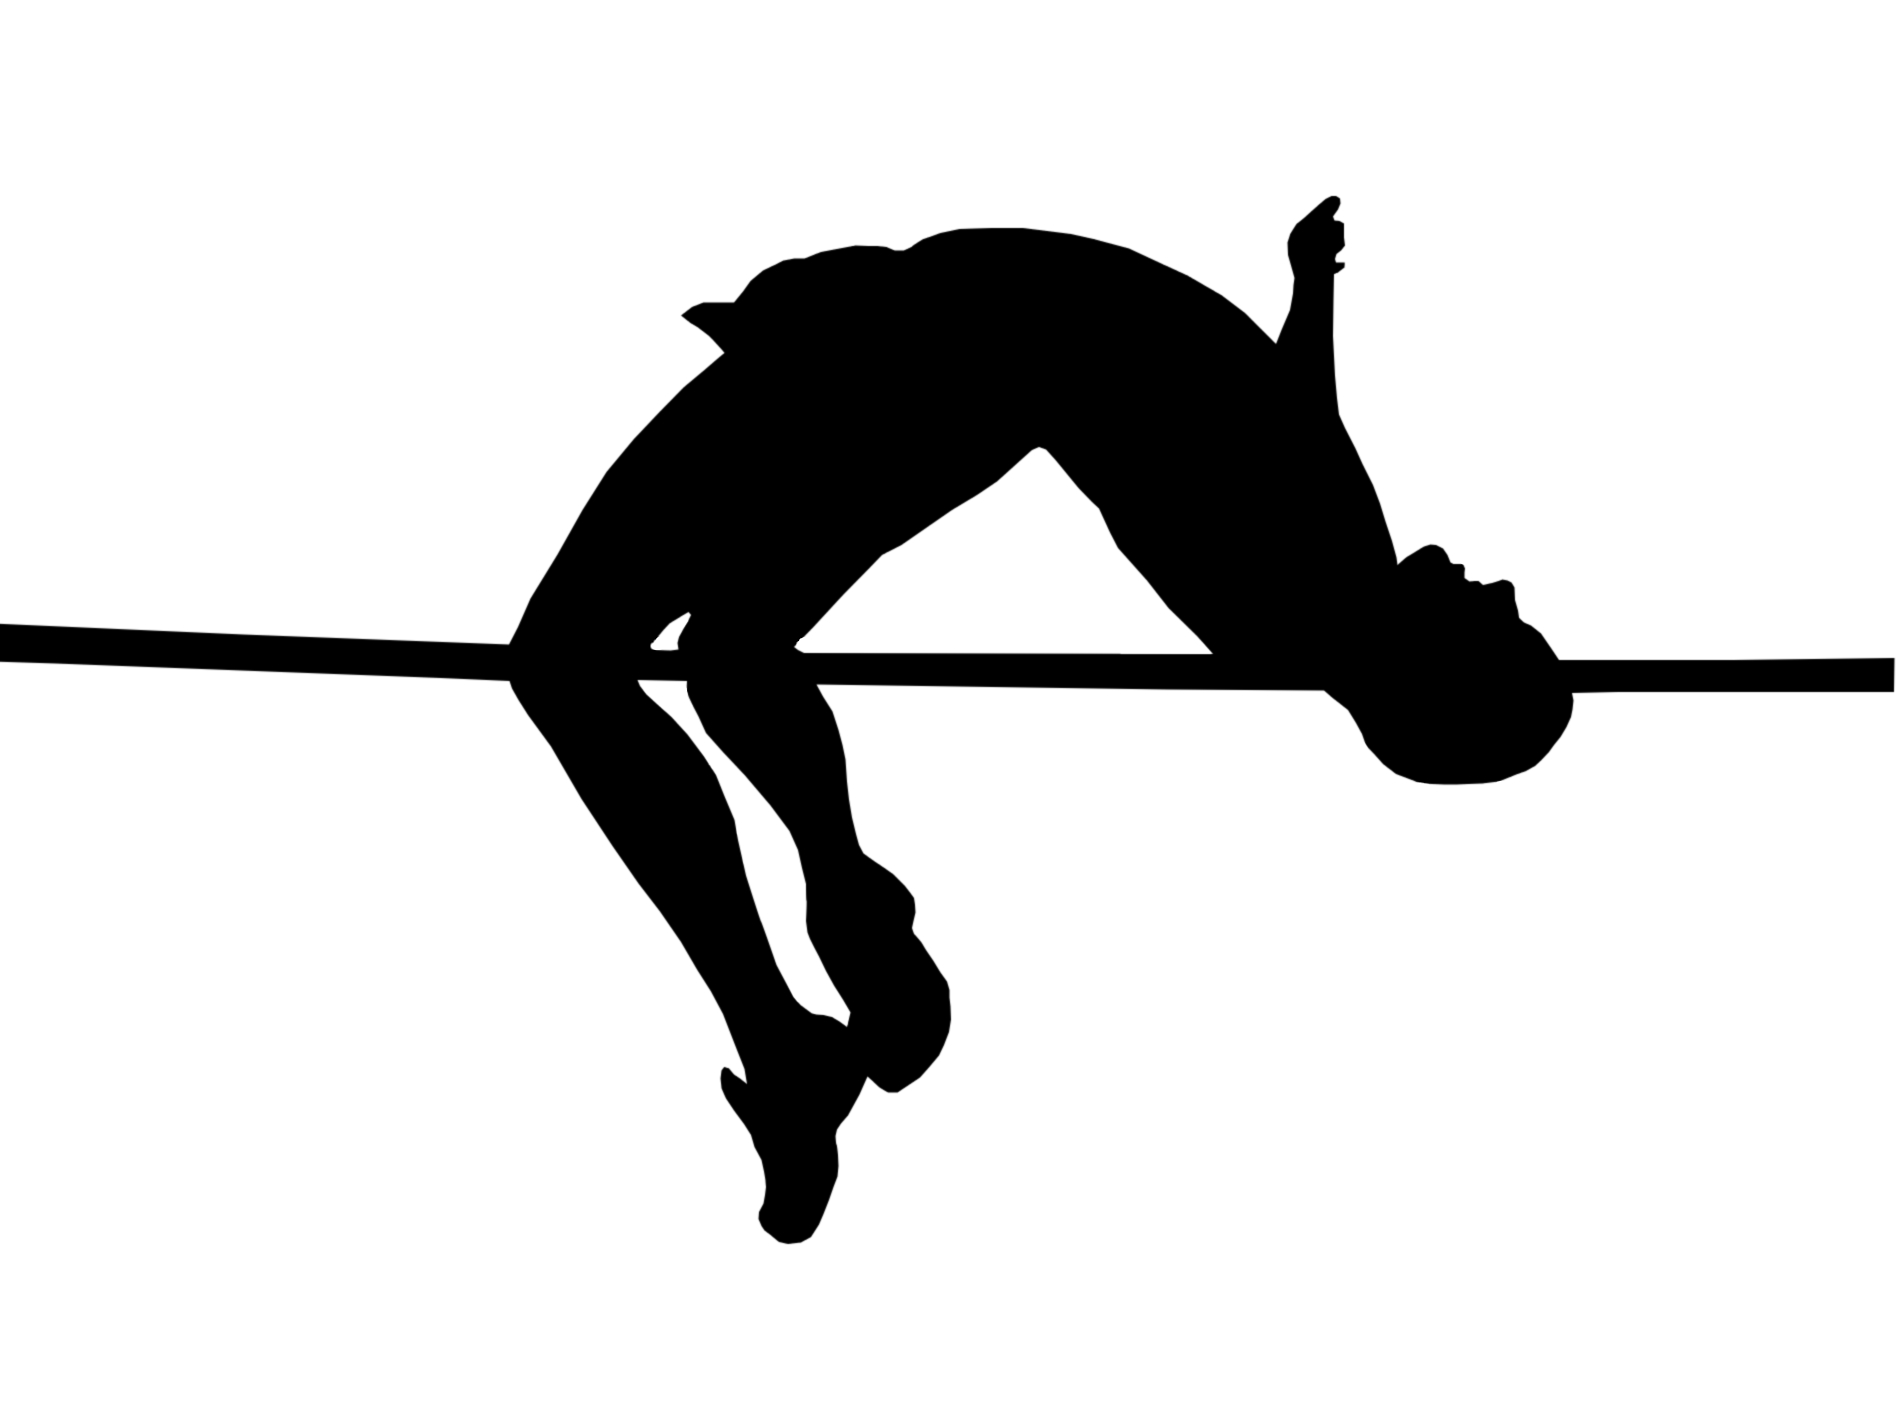 High Jump Silhouette Stock Images RoyaltyFree Images